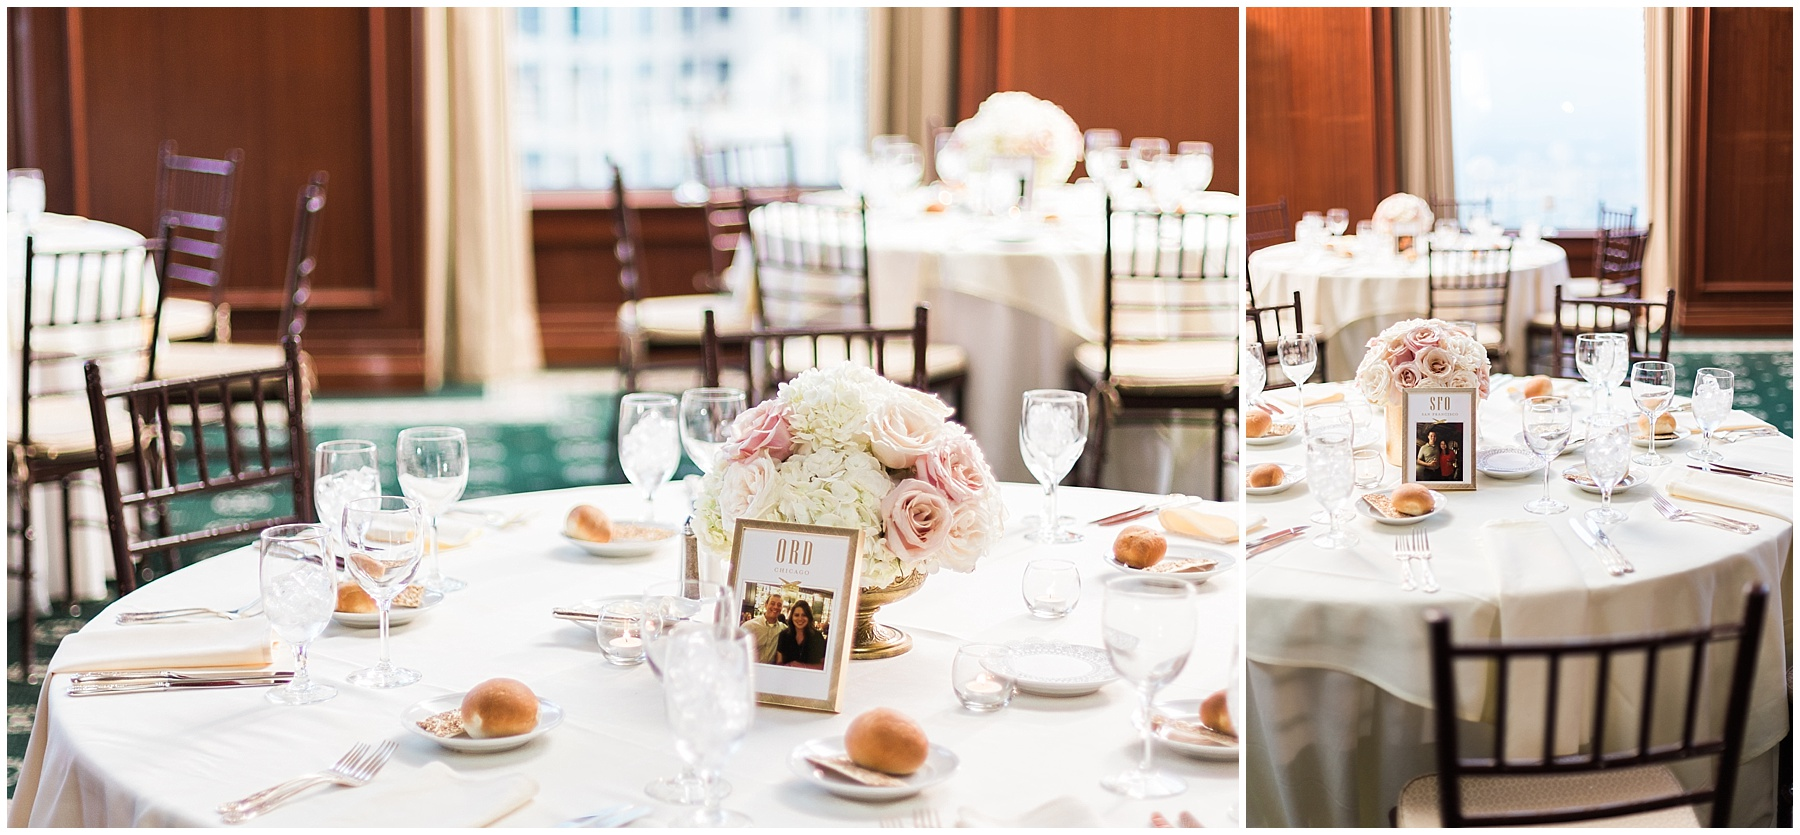 Charlotte City Club Wedding,St. Peter's Catholic Church Wedding,Uptown Charlotte Wedding,